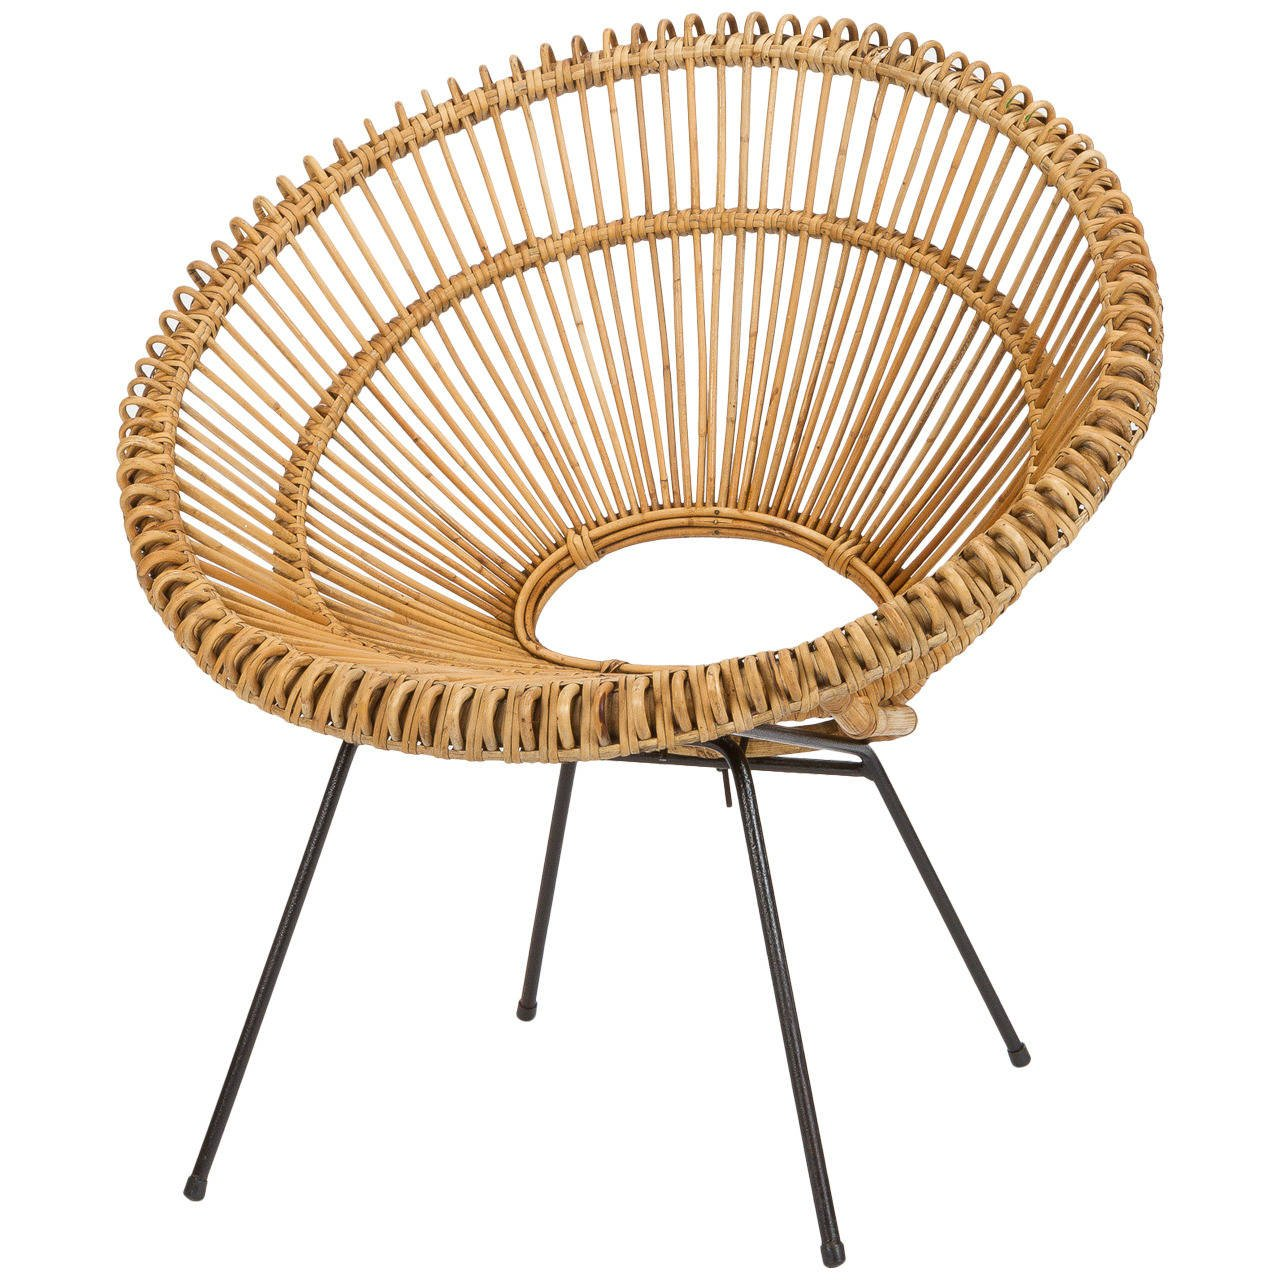 french wicker chair attributed to janine abraham u0026 dirk jan rol, ... rlrpoql